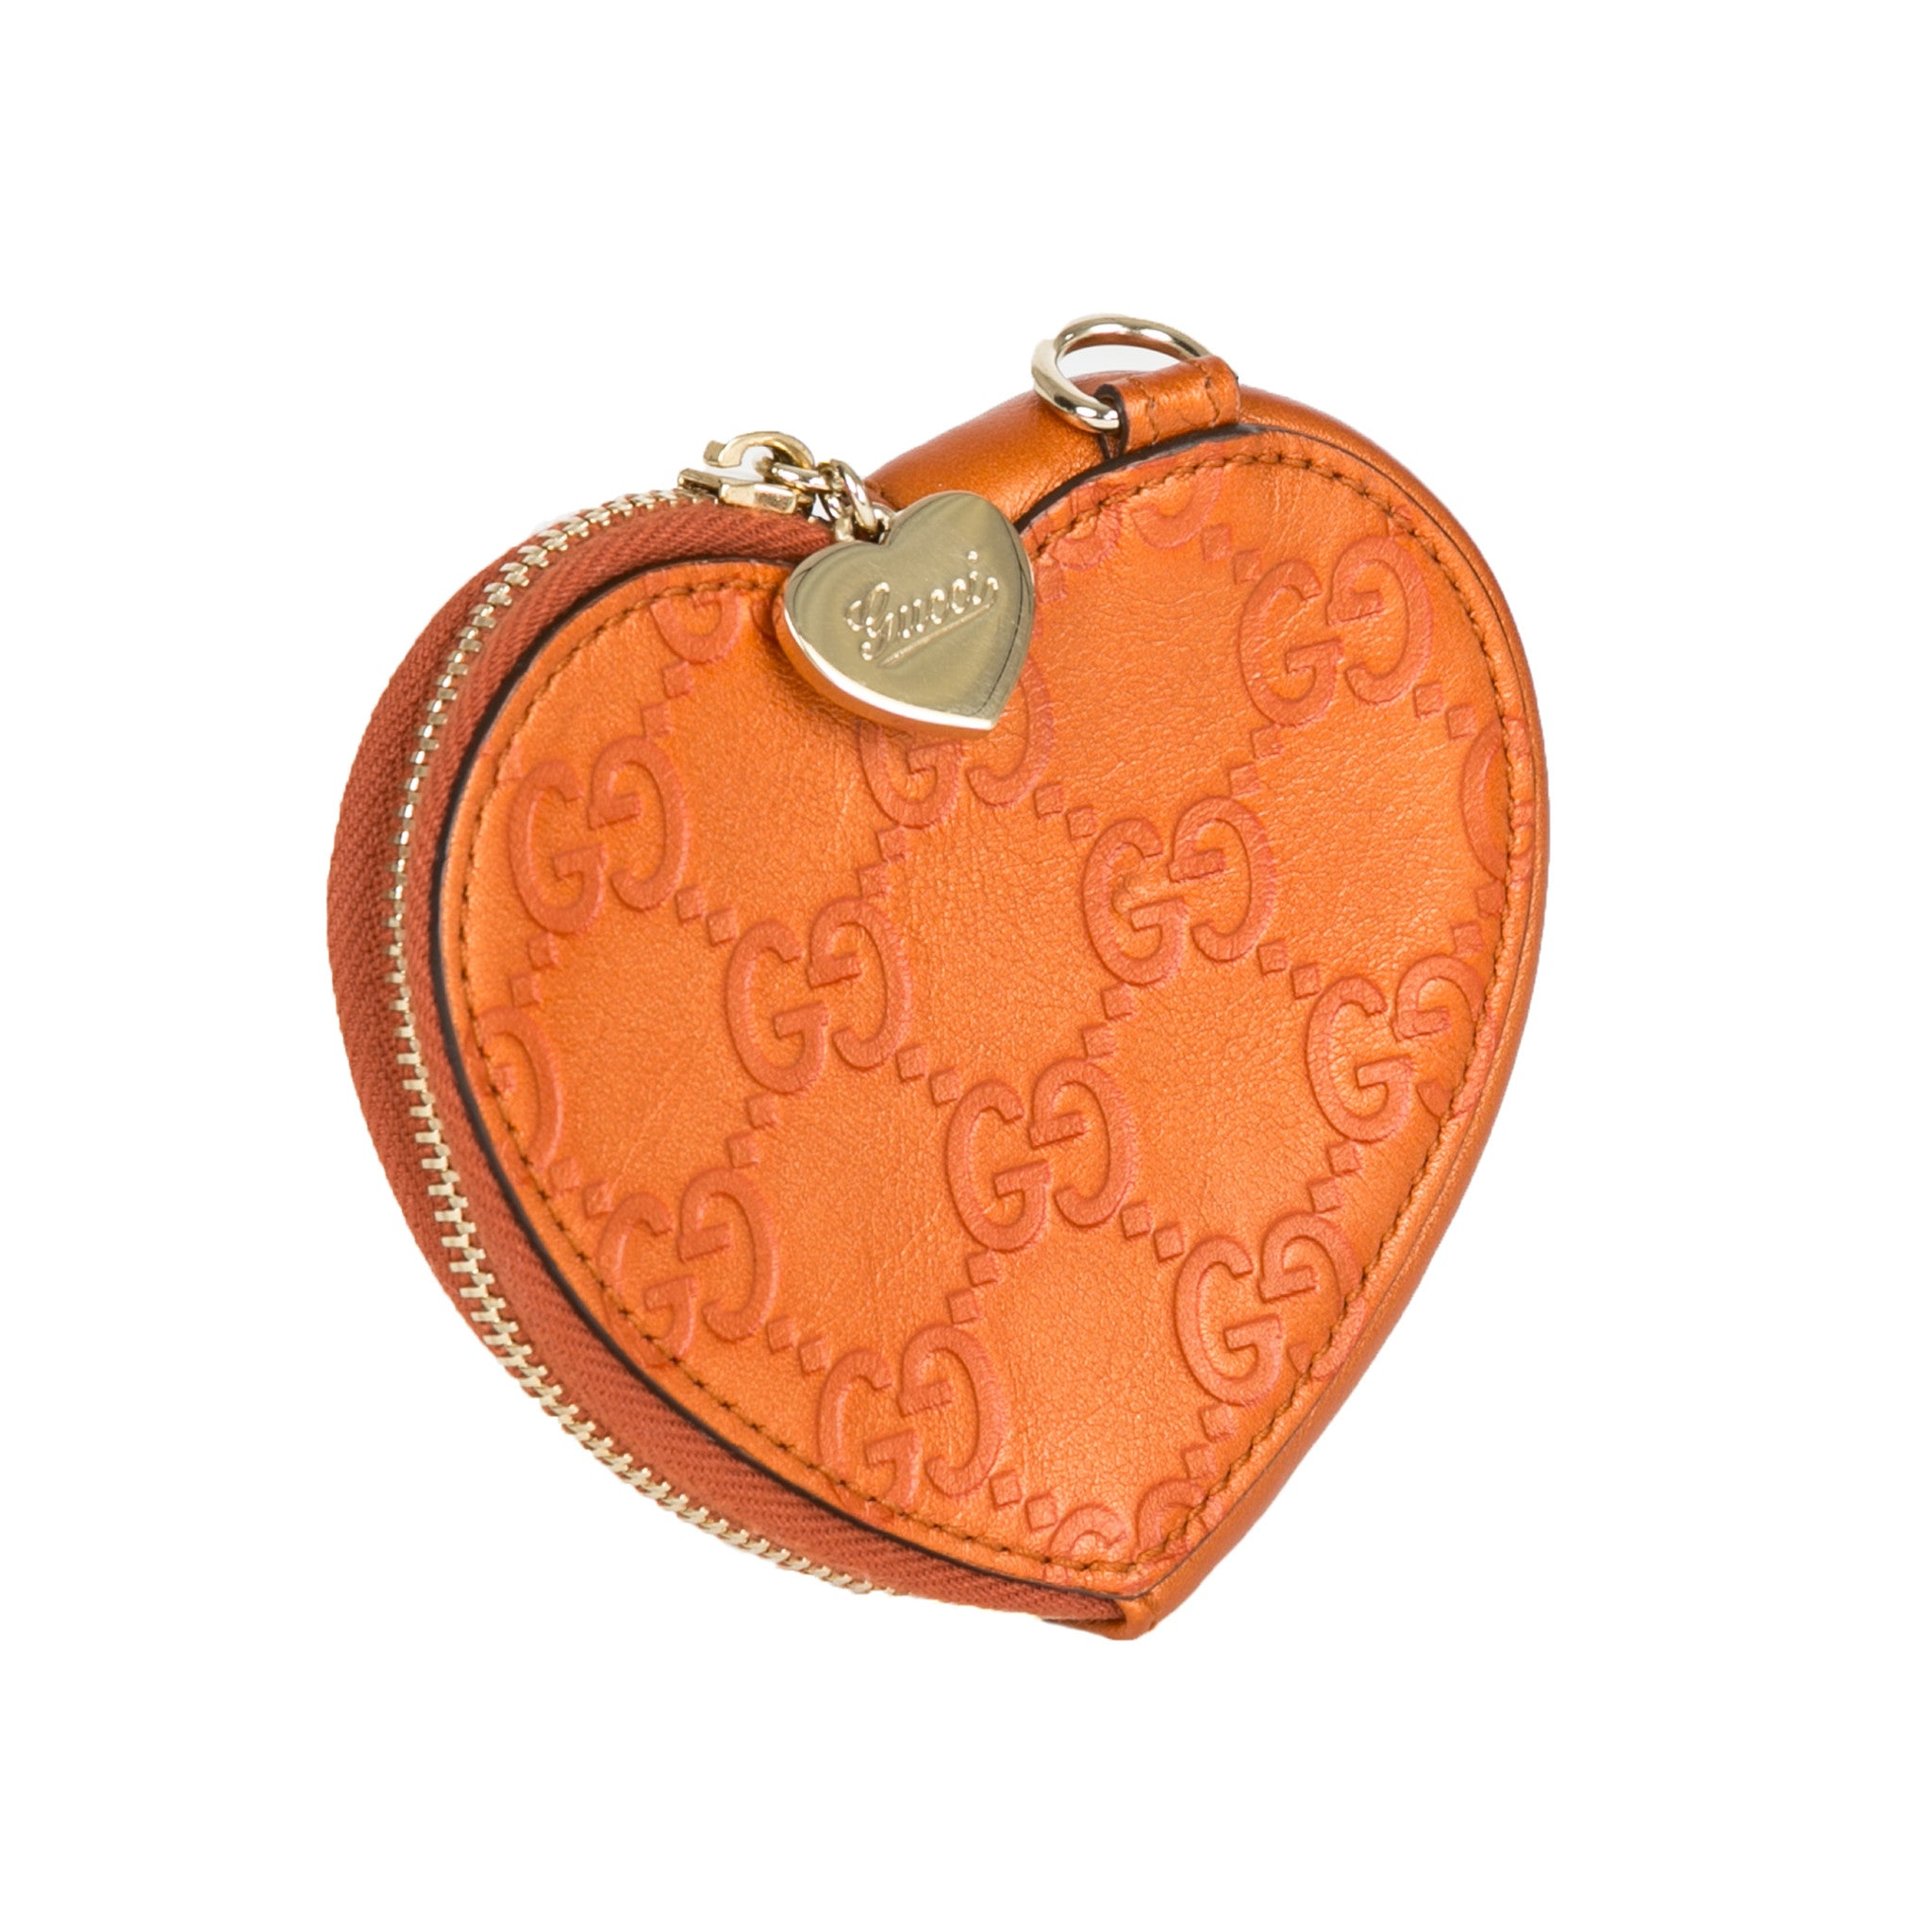 f445b2f1a5c Gucci Coin Purse (Authentic Pre Owned) - 1746004